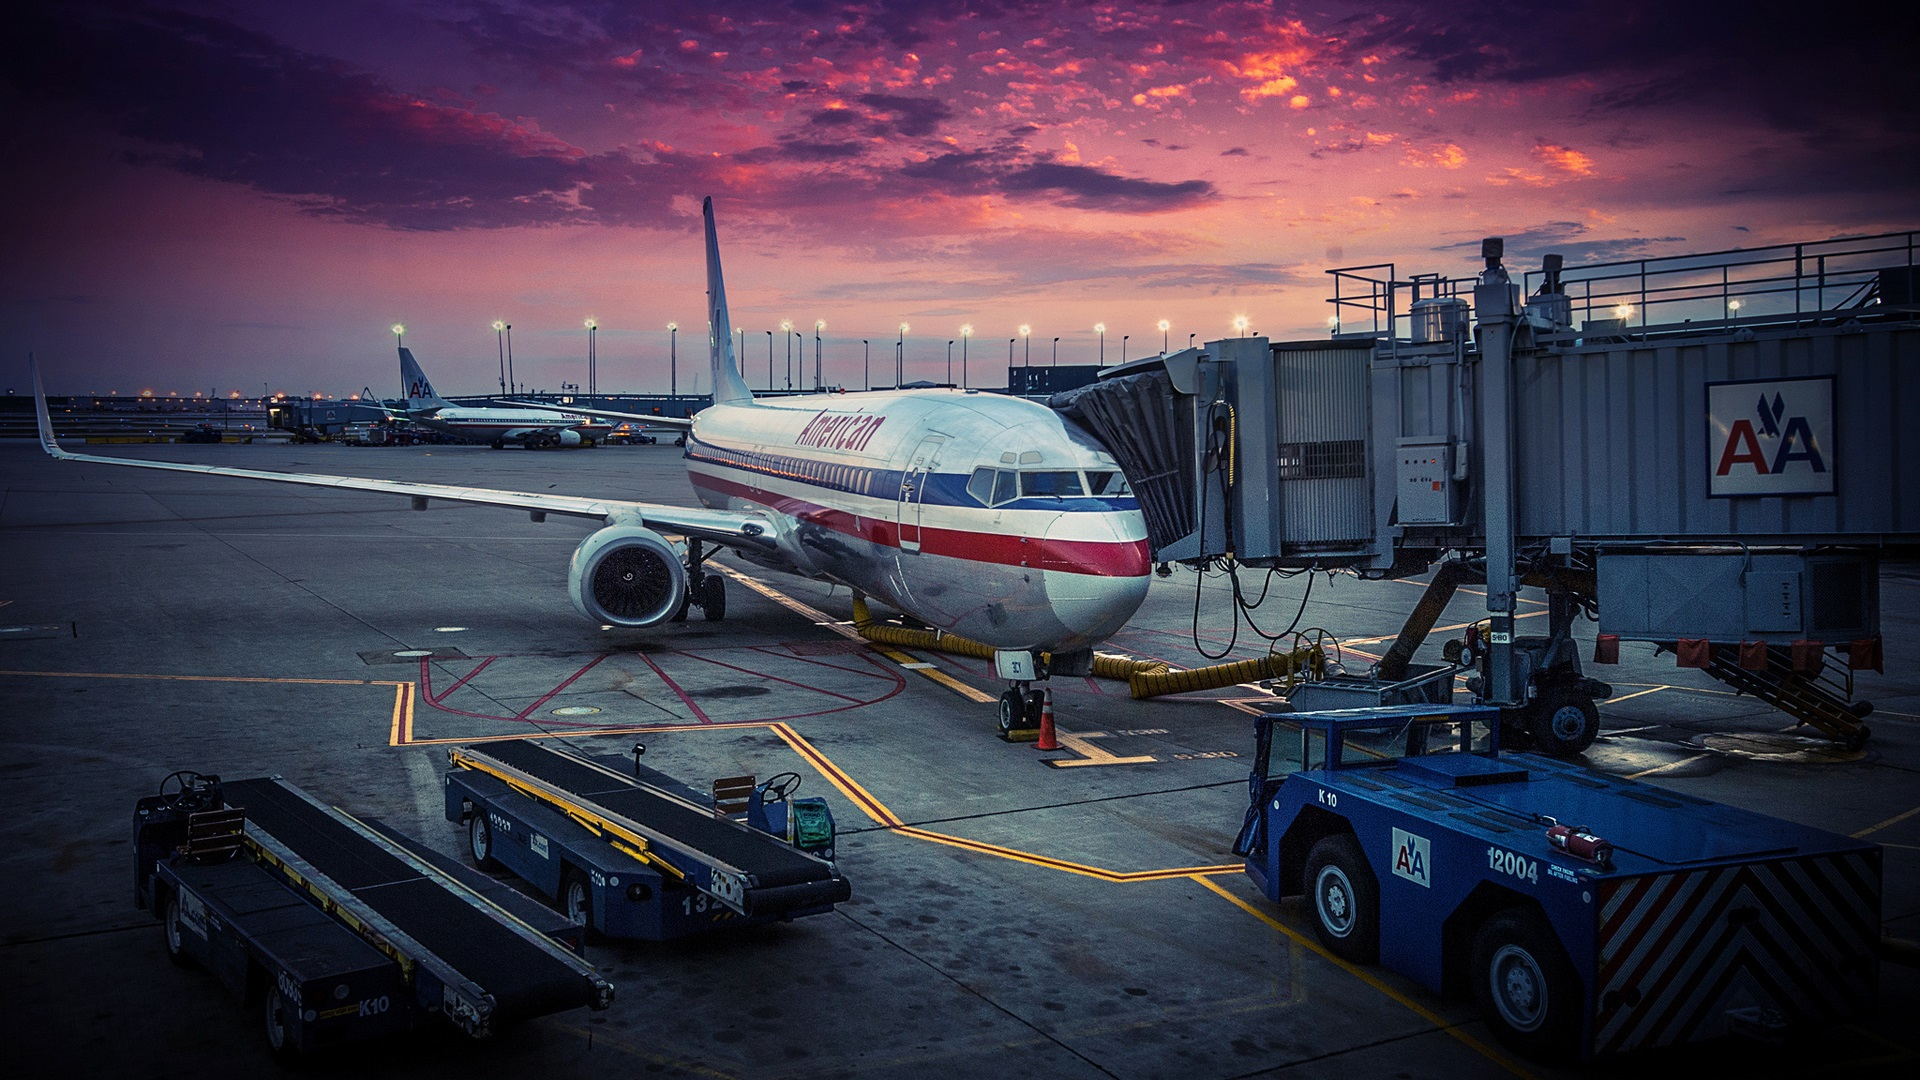 Wallpaper American Airlines, Chicago, airplane, airport